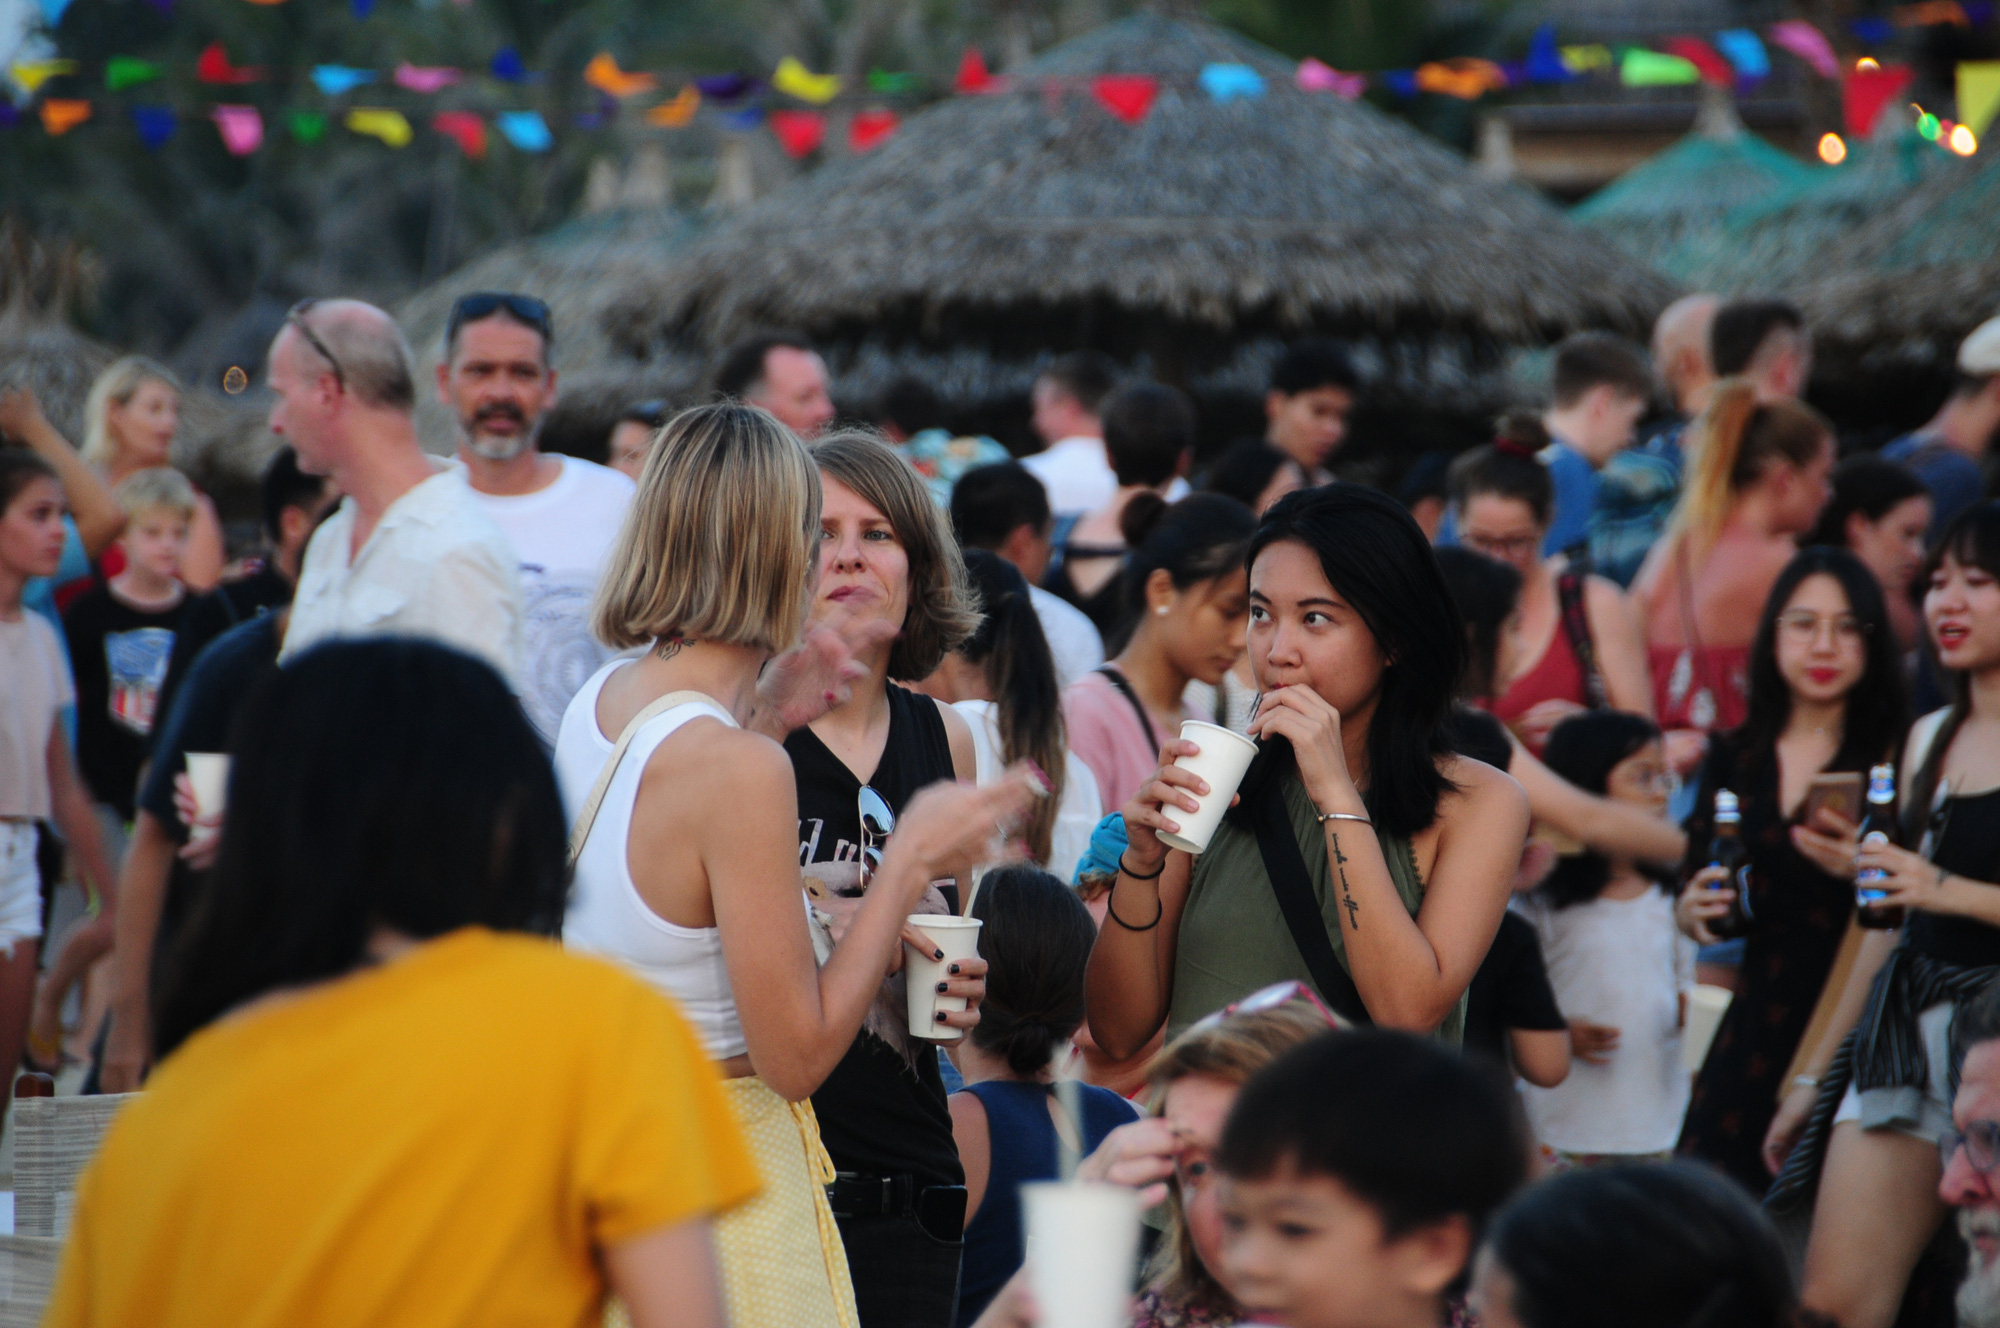 Visitors have a chat while enjoy their food at the 2020 An Bang Beach Food & Music Festival in Hoi An City, Quang Nam Province, Vietnam, July 18, 2020. Photo: B.D. / Tuoi Tre